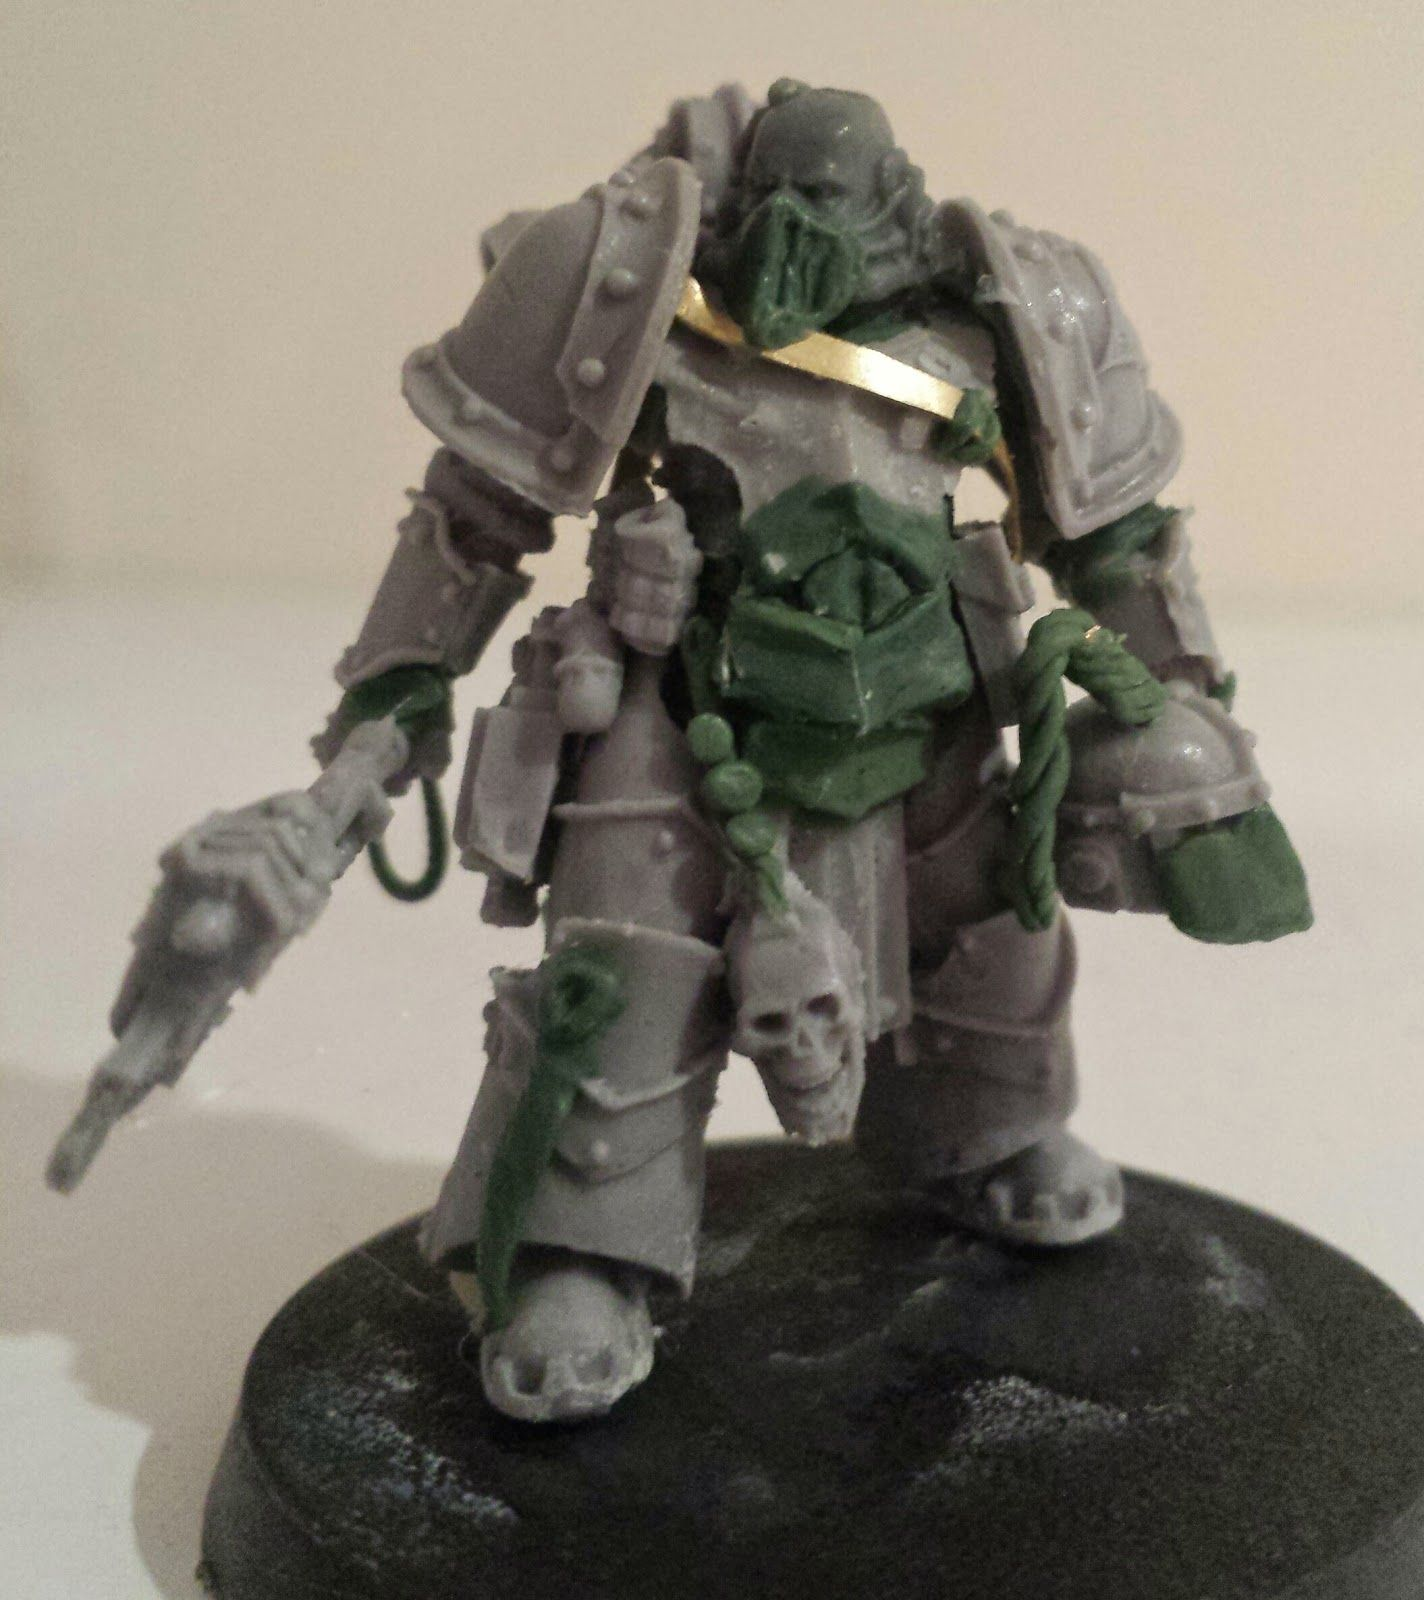 Background image scale to fit - I Am Becoming More Interested In Making Models That Fit To The Scale Stated In The Background Space Marines Are Described As 8 Foot